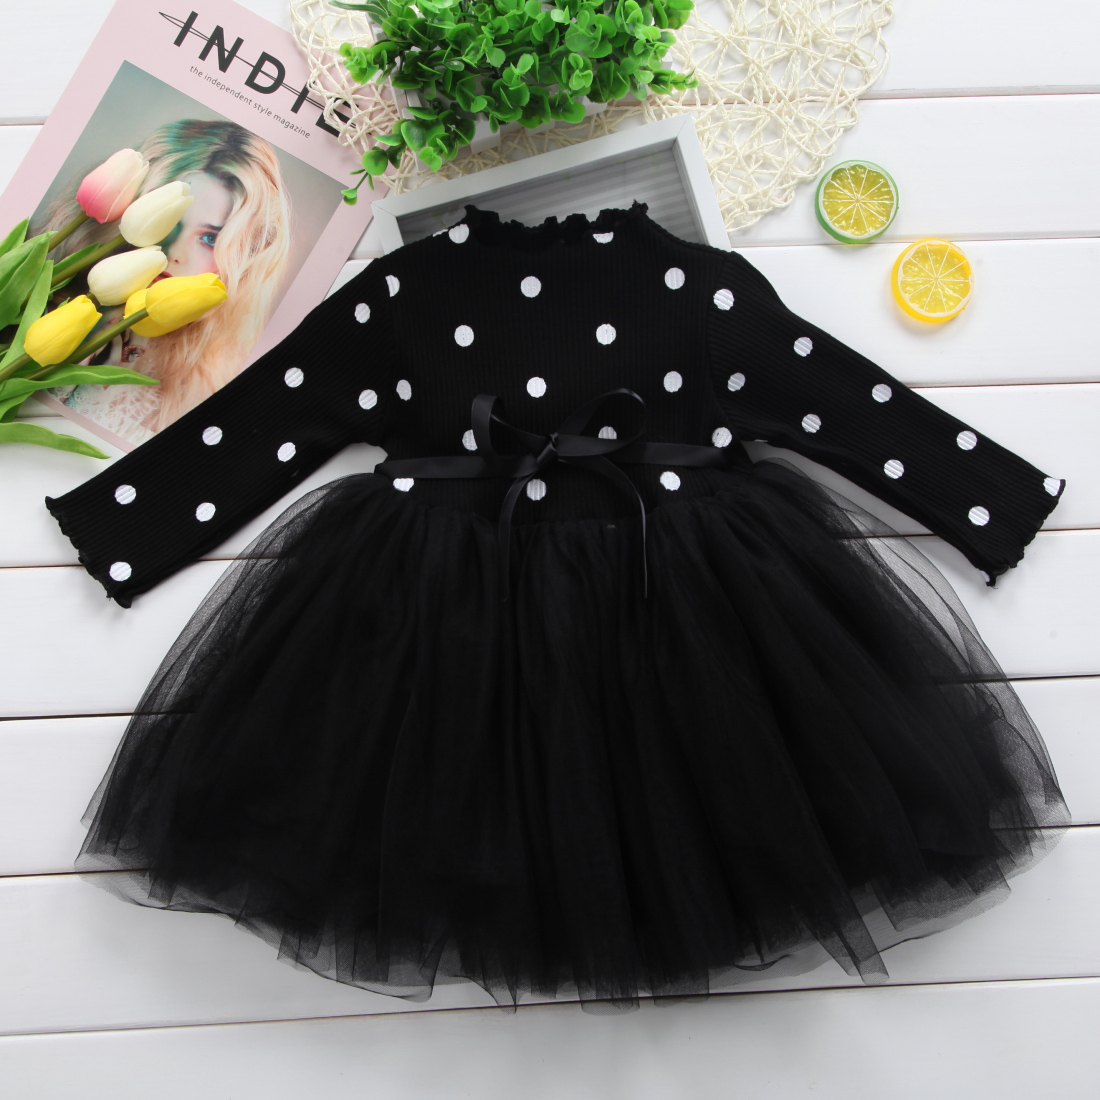 0-4T Kid Girls Princess Baby Dress Newborn Infant Baby Girl Clothes Bow Dot Tutu Ball Gown Party Dresses Baby Kid Girl clothes цена